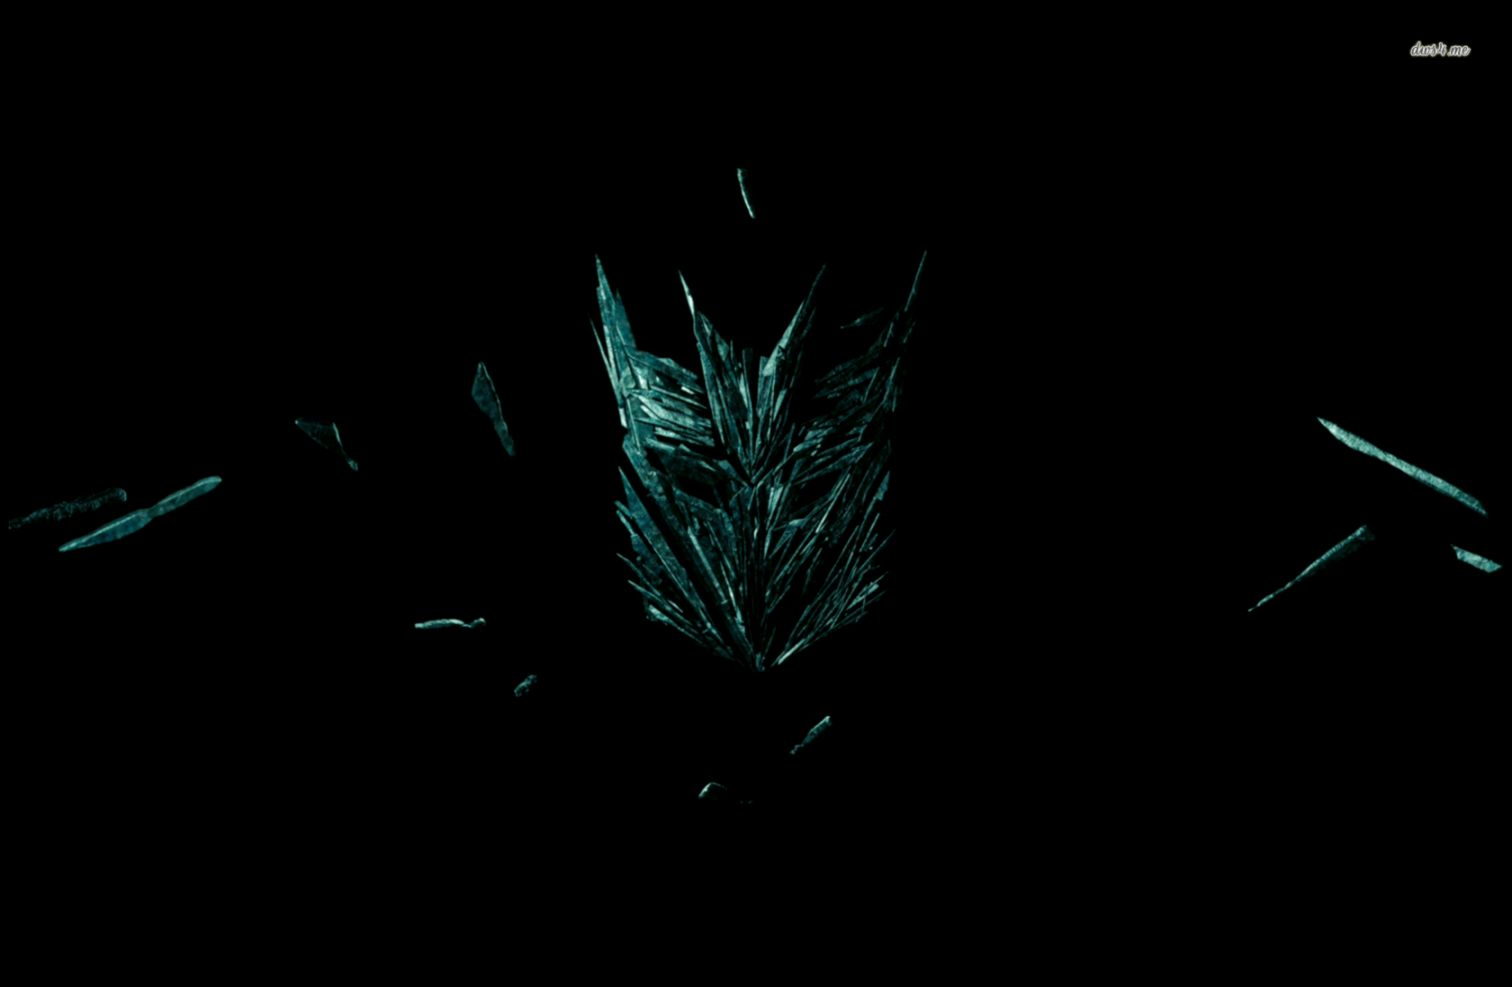 decepticons transformers 2014 wallpaper wallpapers wallpapers quality